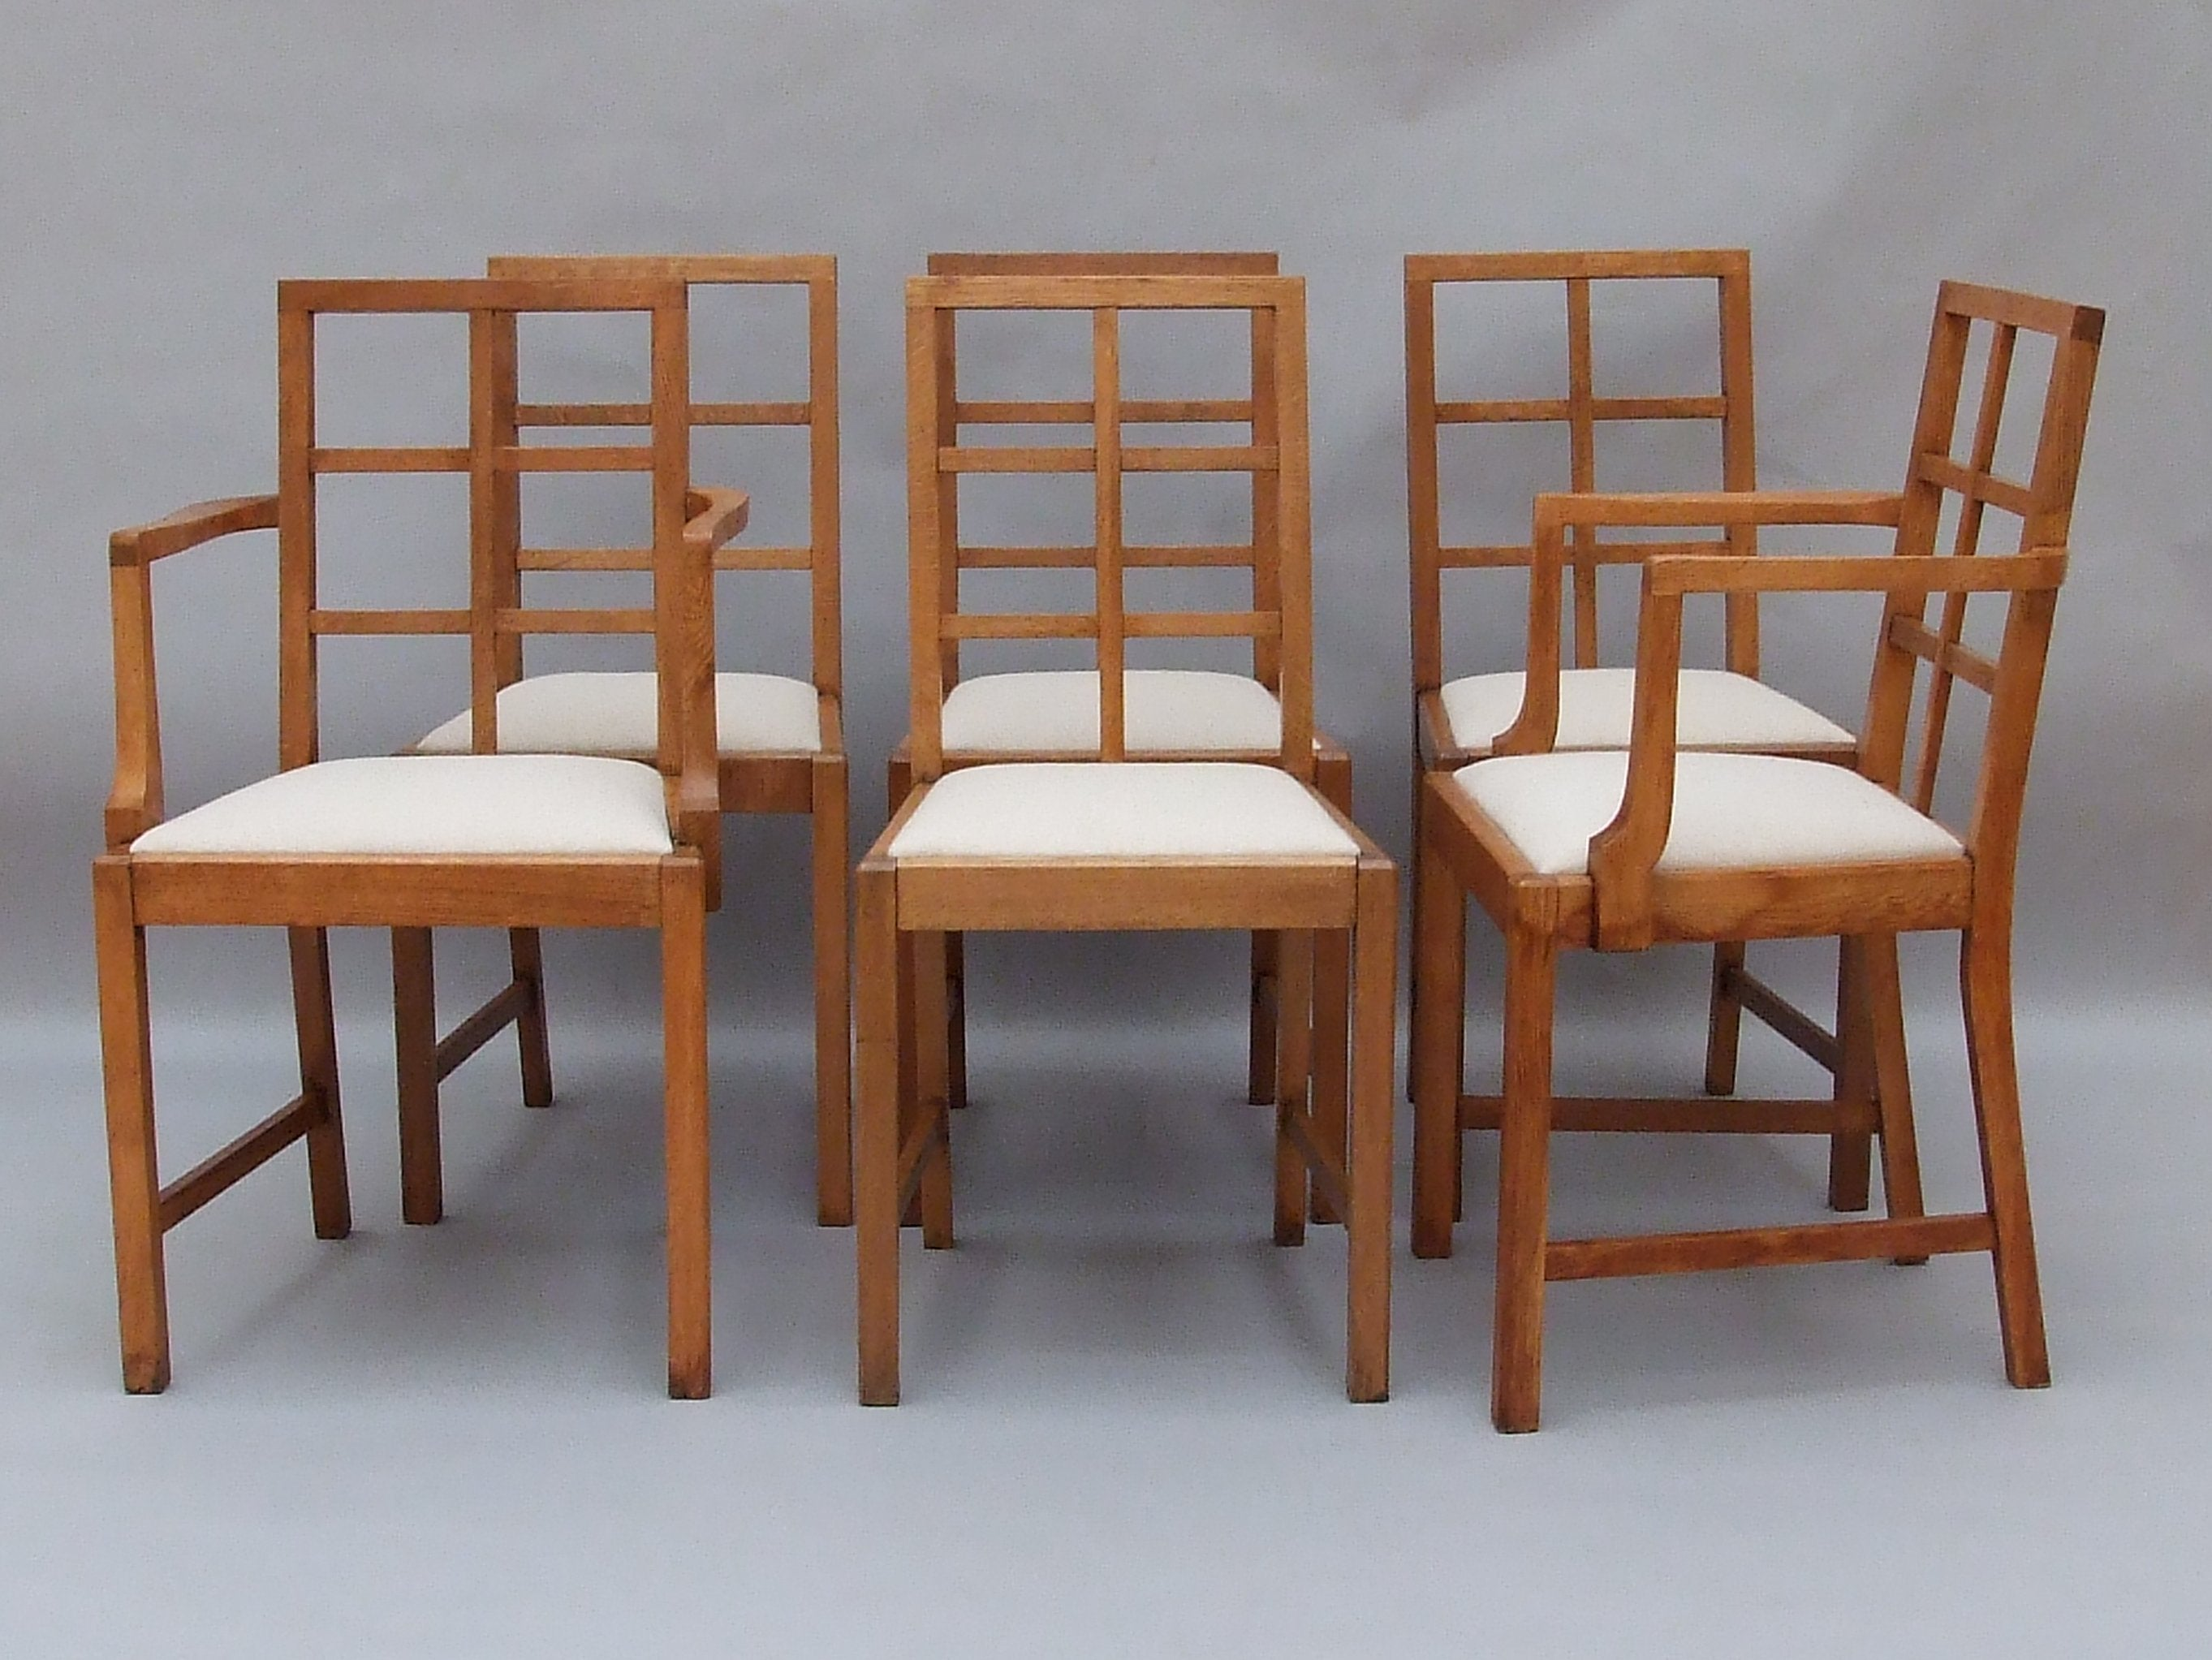 Set of 3 Lattice back Cotswold dining chairs - The Millinery Works